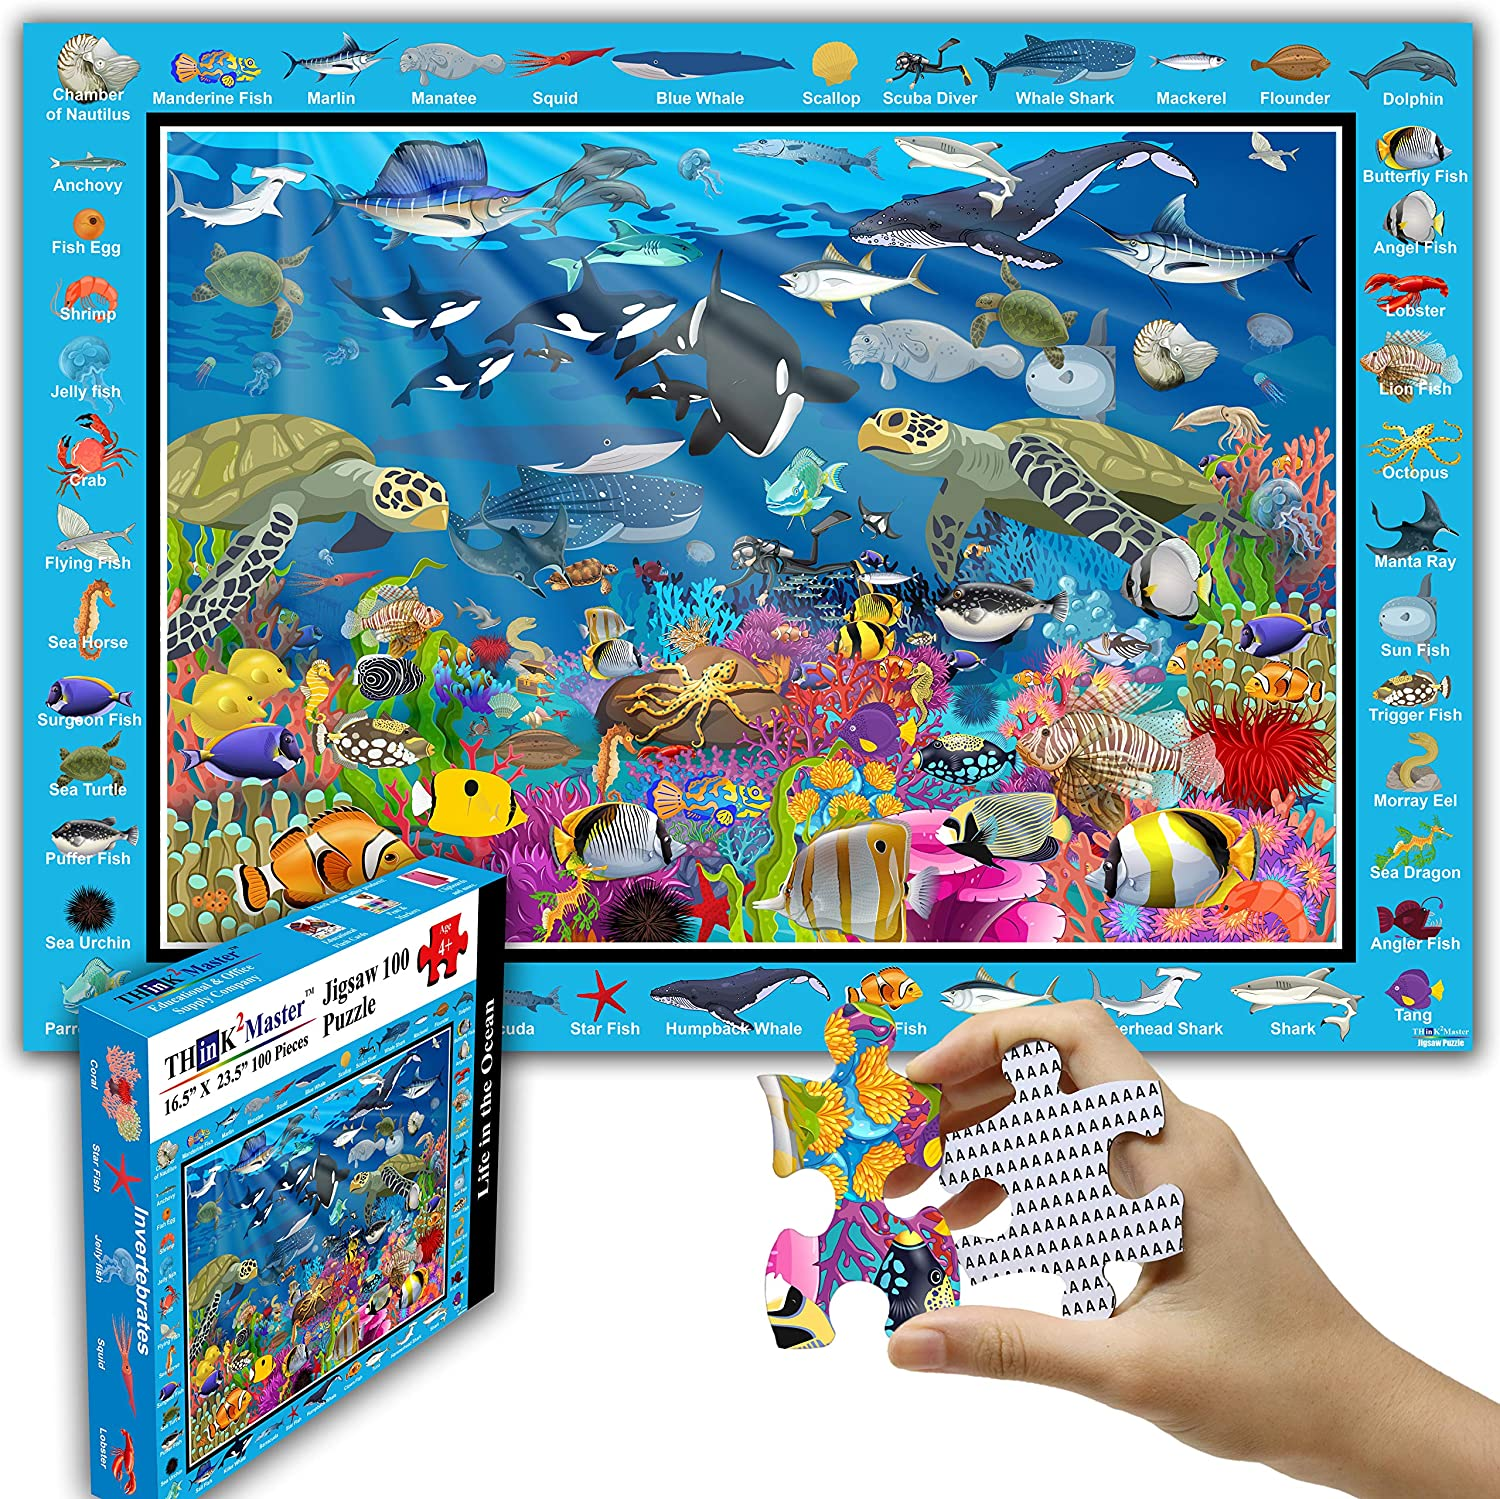 OFFicial store 1 year warranty Think2Master Colorful Ocean Life 100 Jigsaw Fun Ed Pieces Puzzle